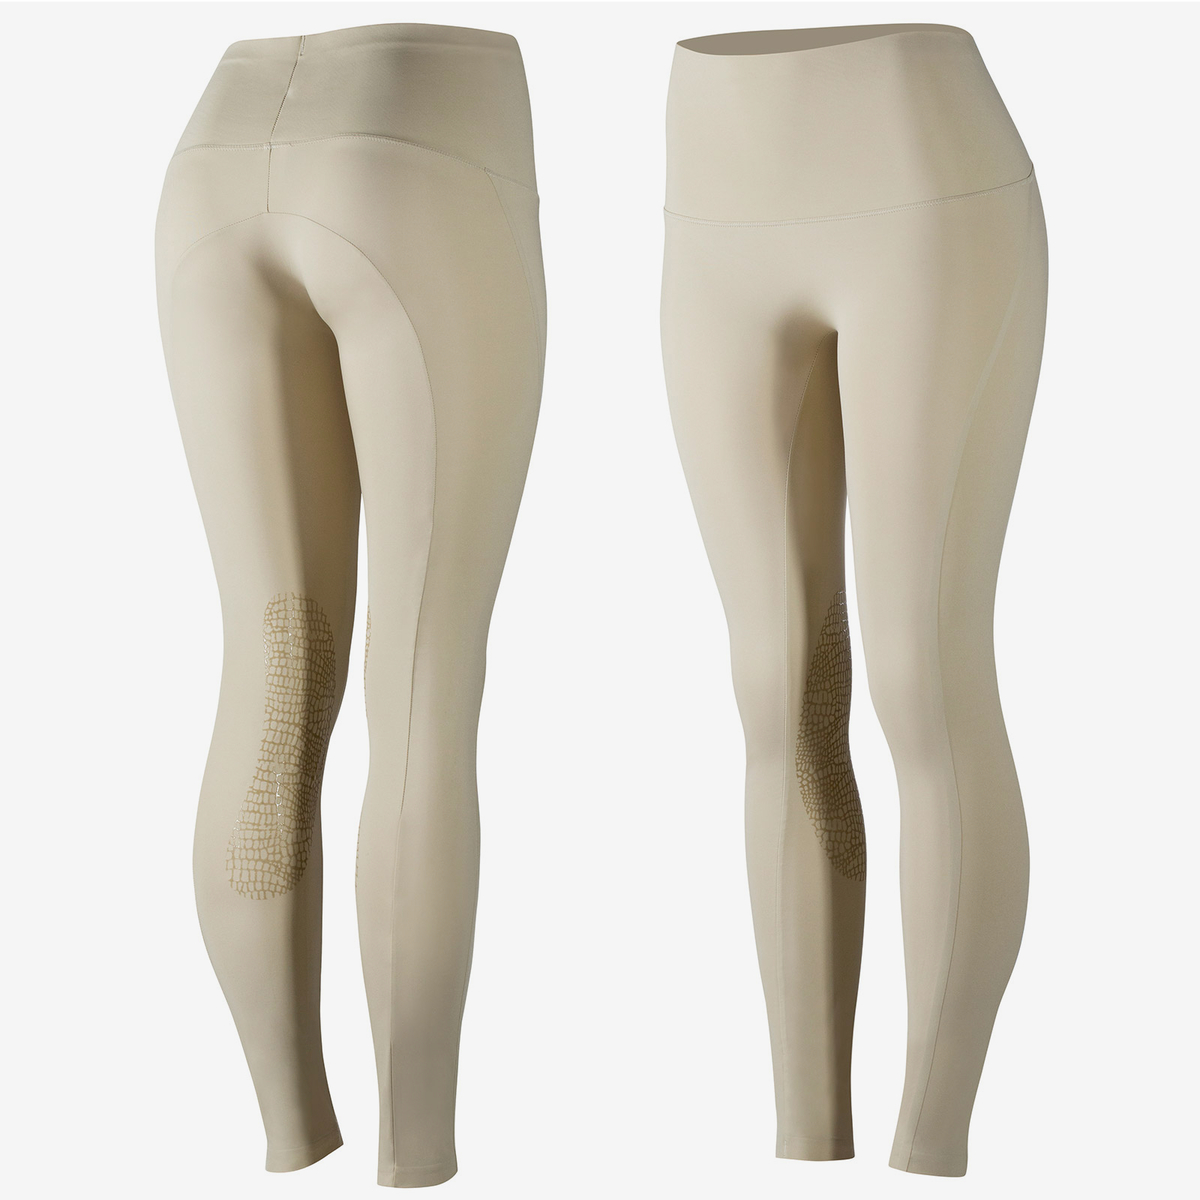 d41a037c0 Horze Bianca Women s Superlight Silicone KP Tights